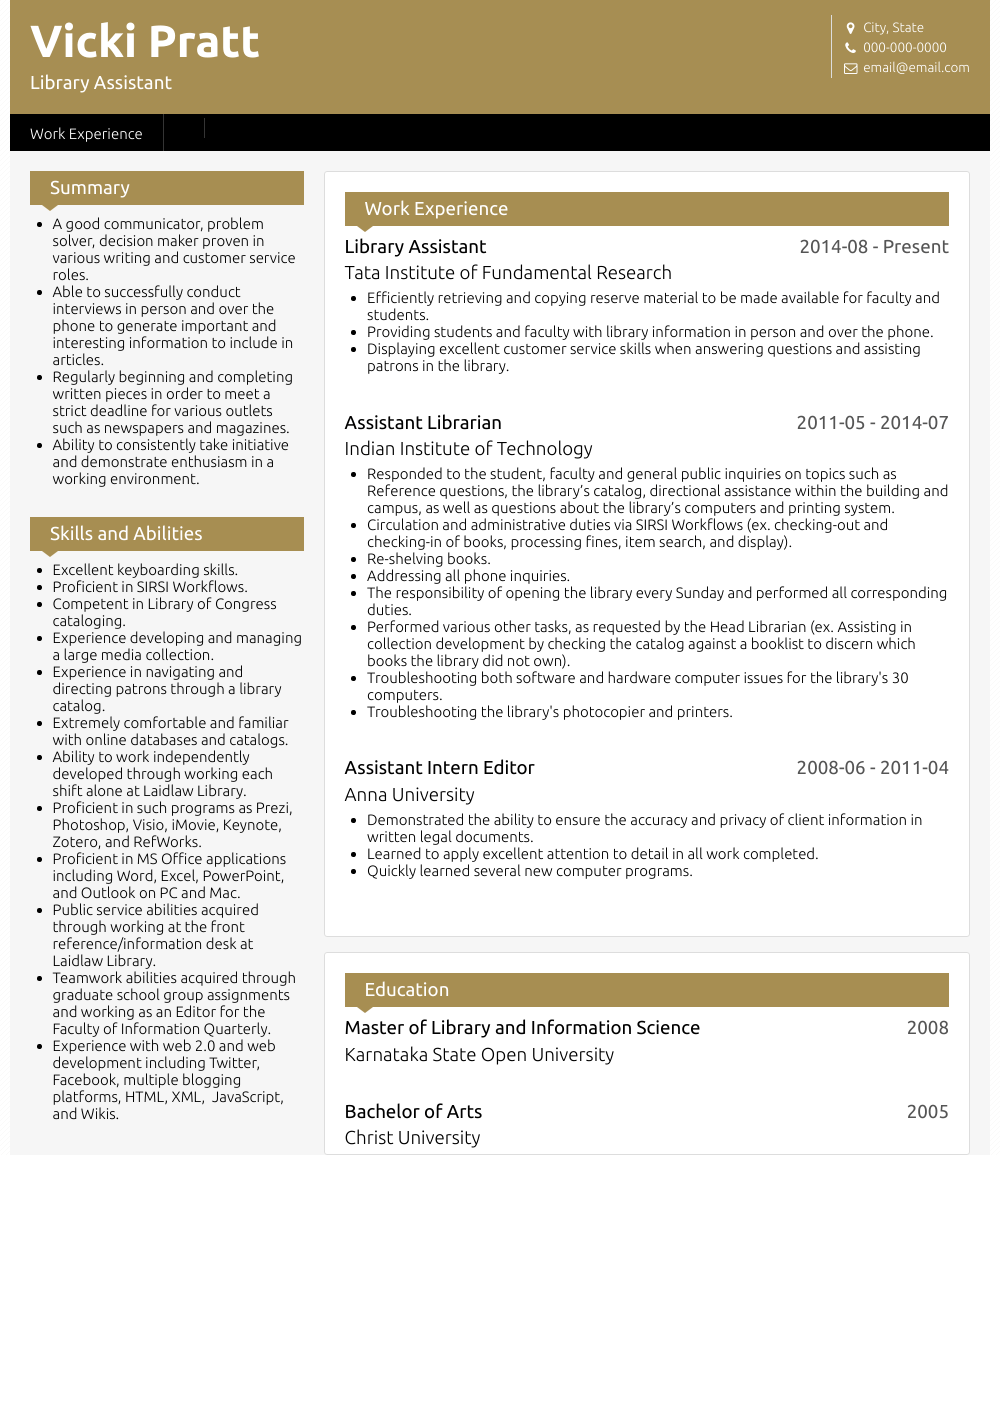 Library Assistant Resume Sample